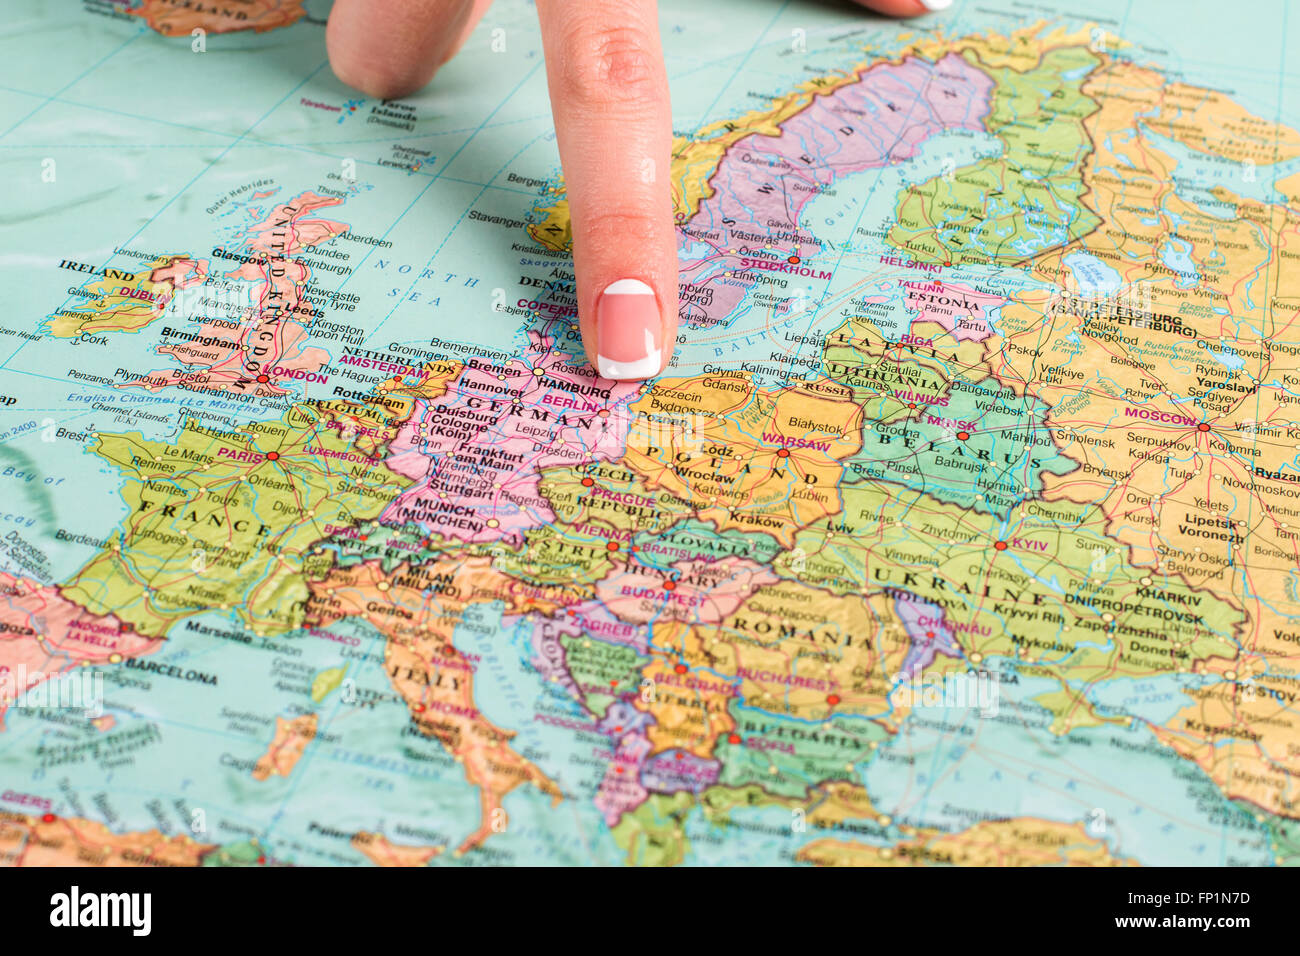 Germany in atlas. Woman's finger shows Germany's borders. Home of the finest beer. Member of European Union. - Stock Image